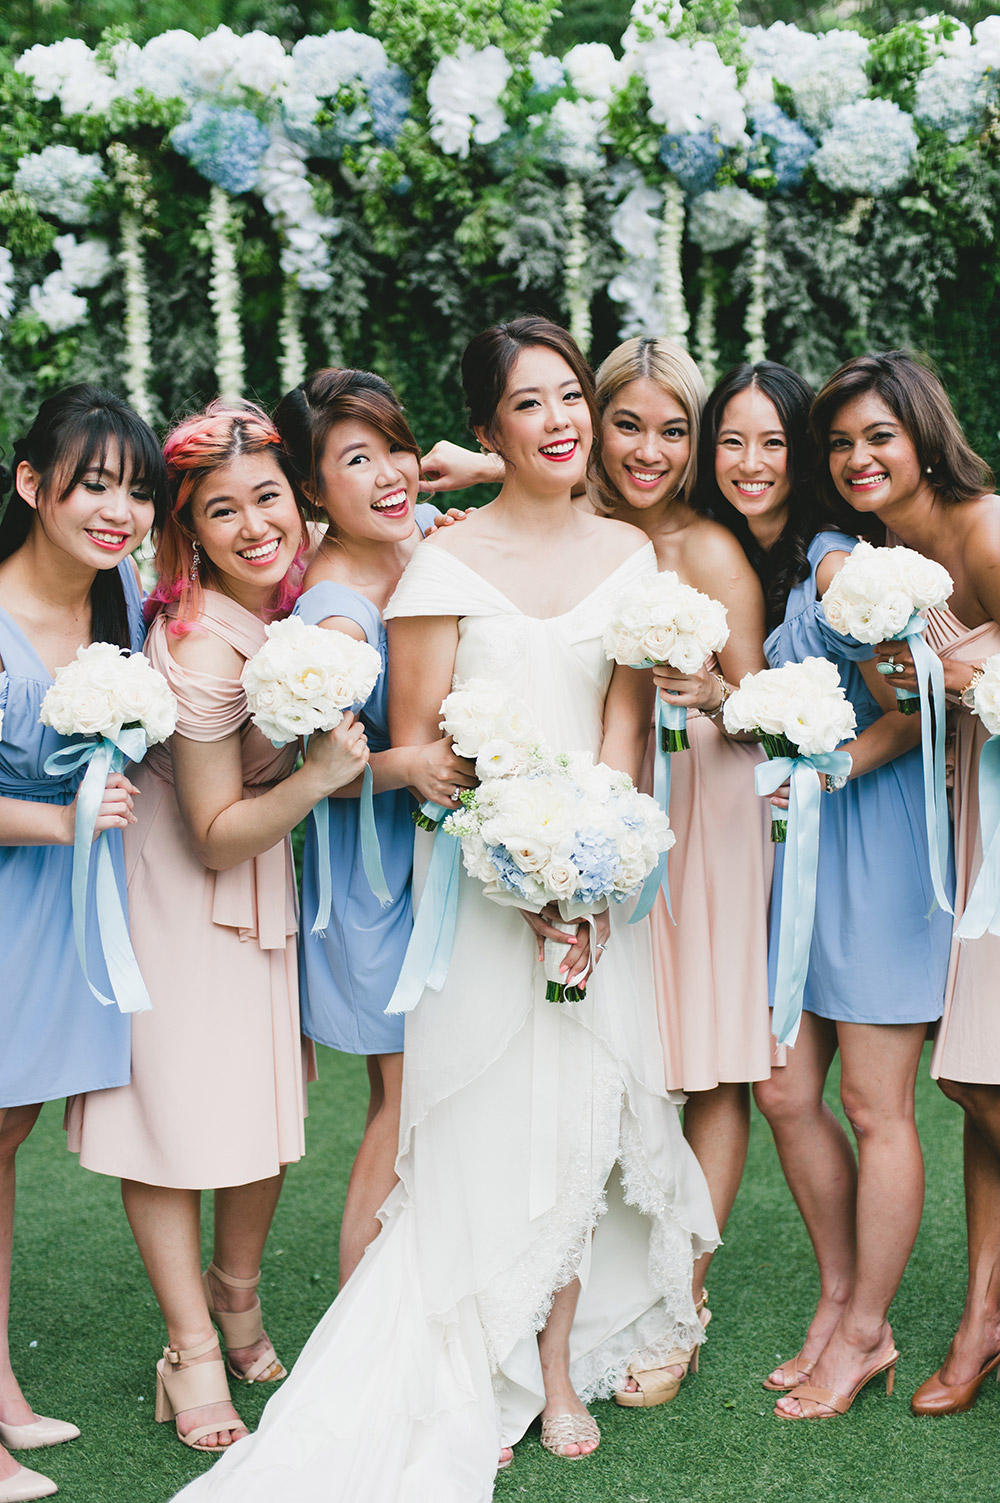 Pastel colour bridesmaids. Photo by Inlight Photos. www.theweddingnotebook.com